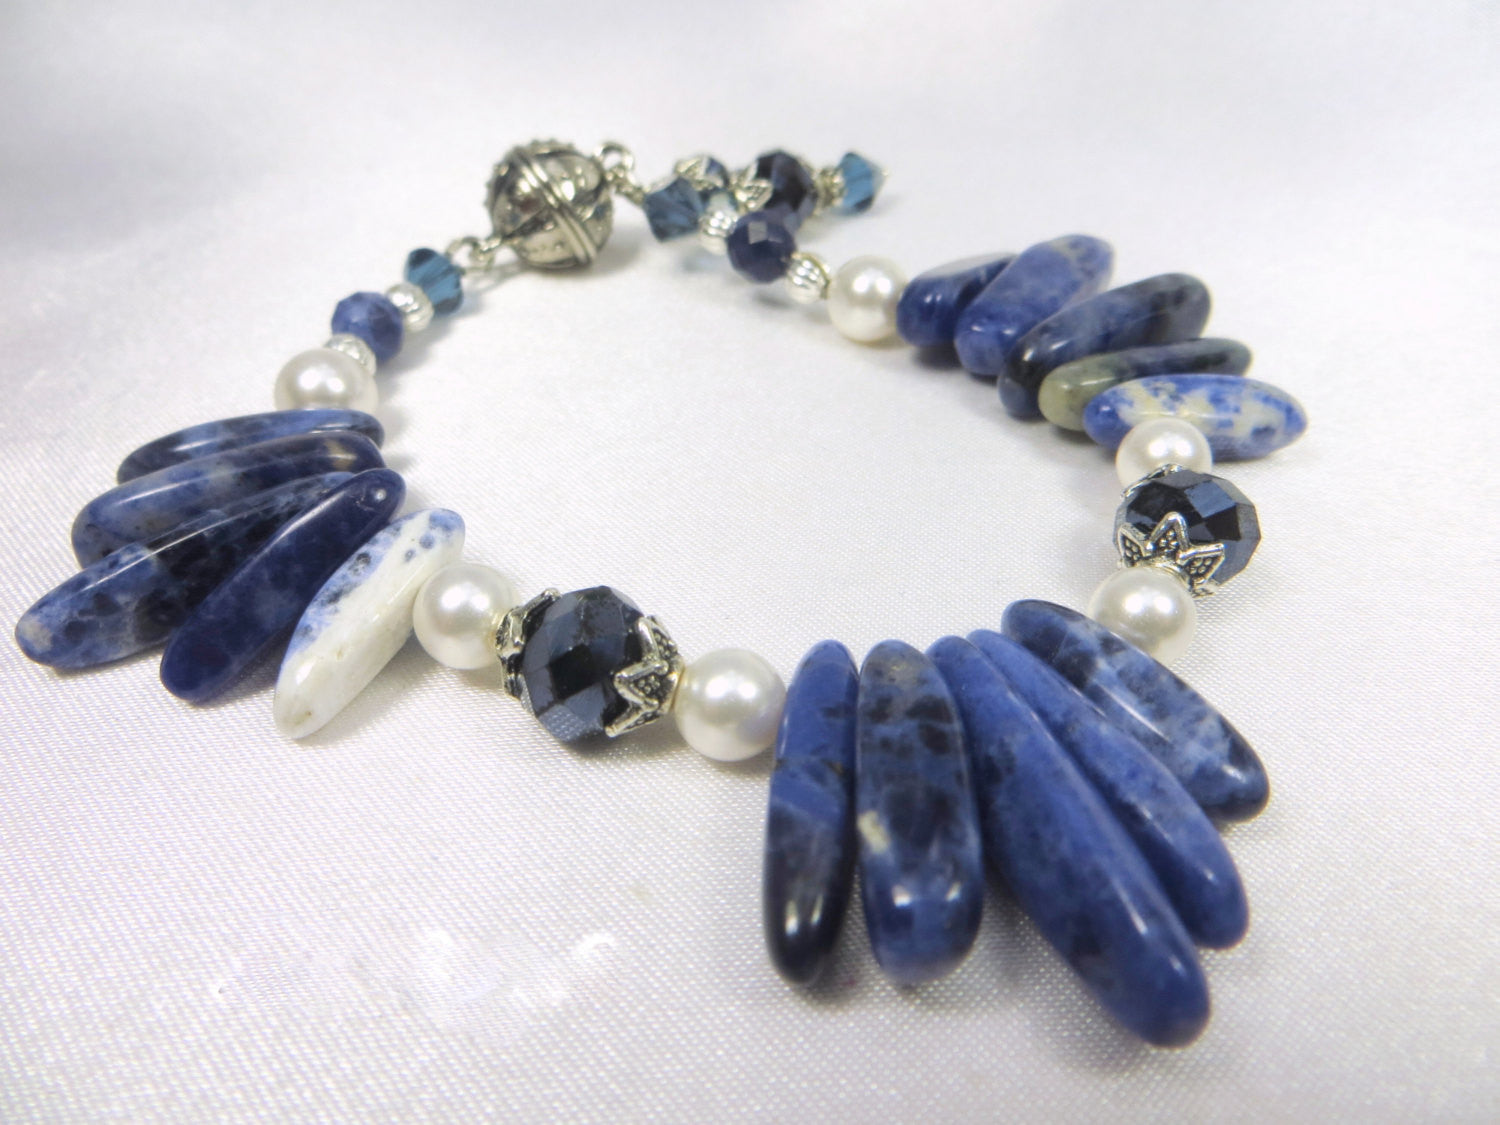 Blue Sodalite Spike Bracelet with Swarovski Crystals and White Pearls - Odyssey Creations